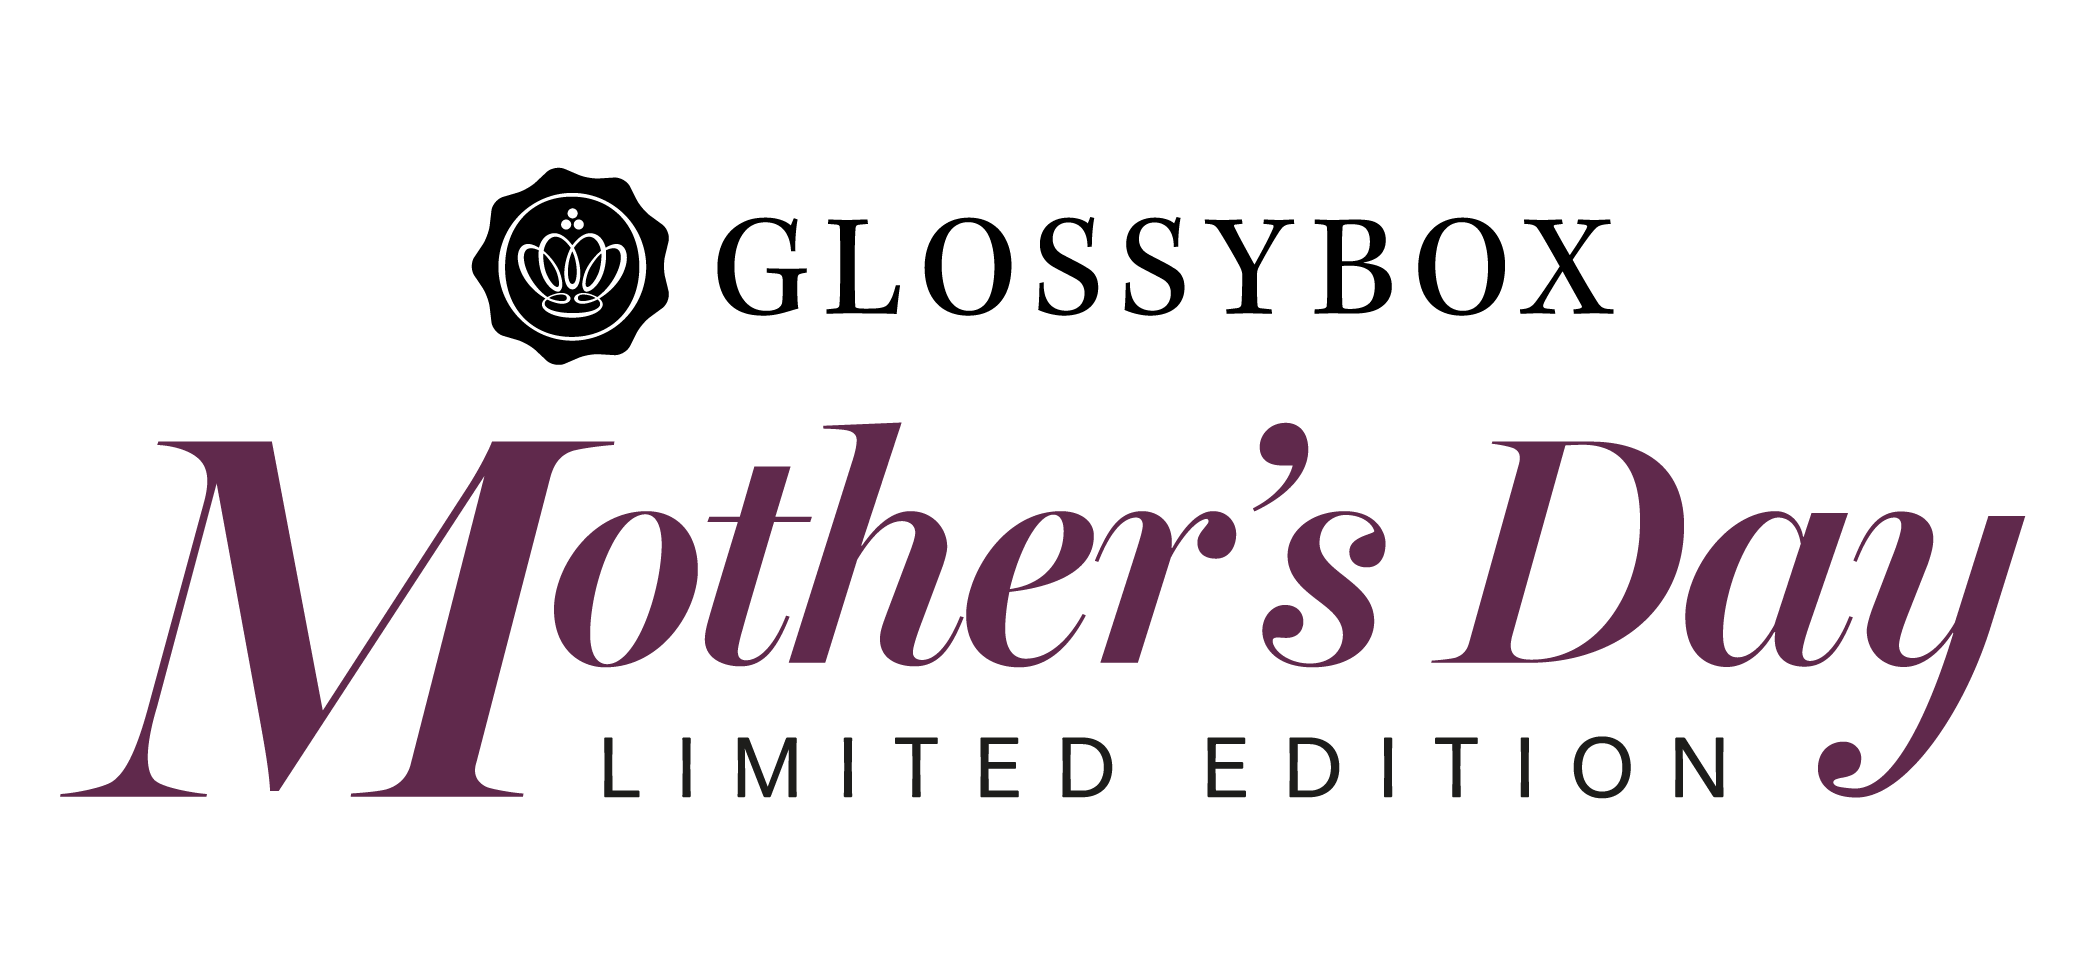 mothers day limited edition 2020 glossybox logo April special edition limited